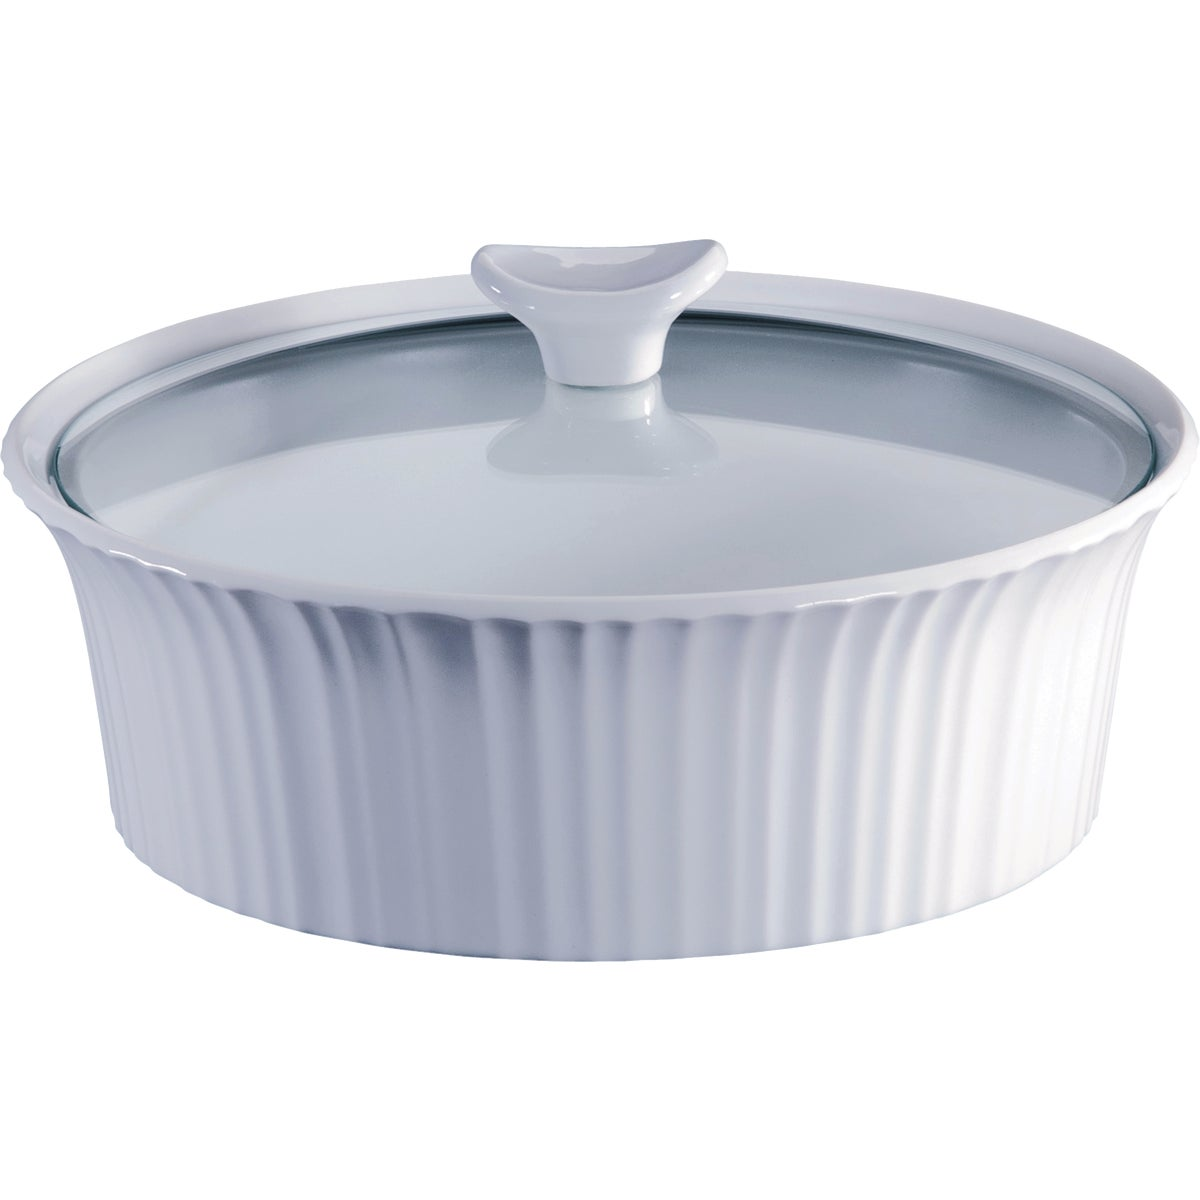 ROUND COVERED CASSEROLE - 6002262 by World Kitchen  Ekco